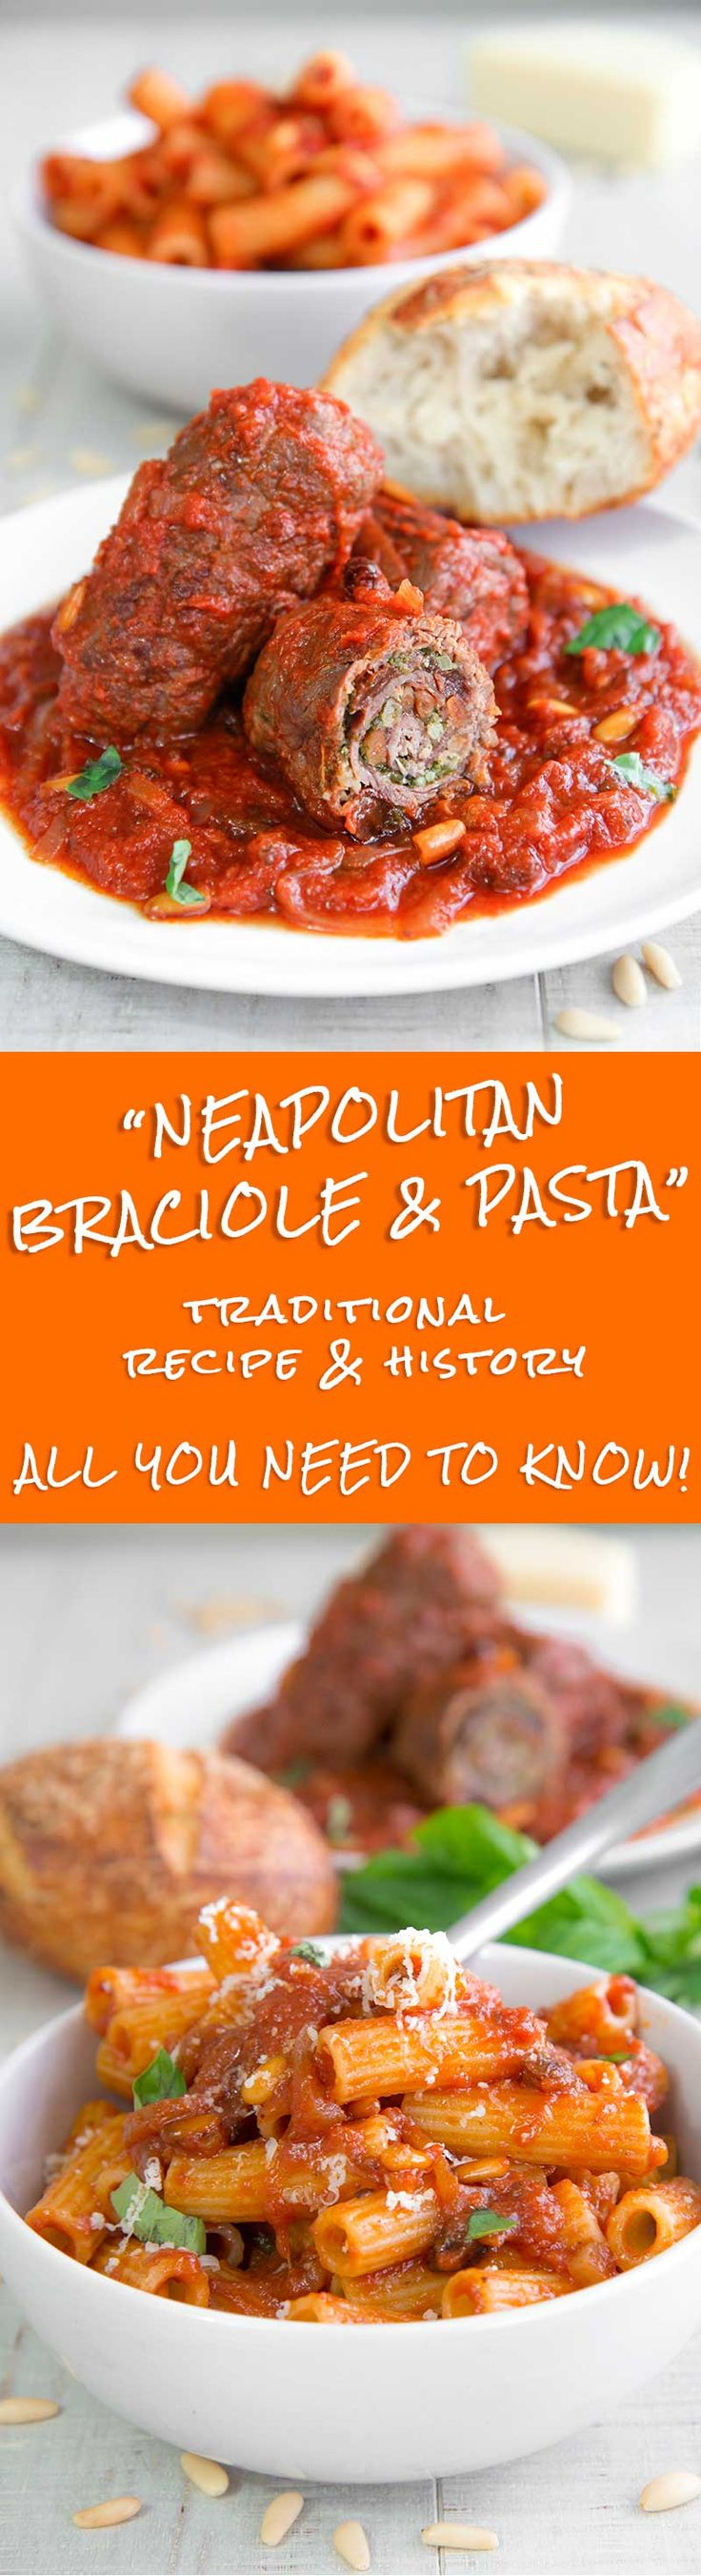 BRACIOLE NEAPOLITAN-STYLE recipe & history - all you need to know! - Braciole recipe Neapolitan-style is a dish that ran the history of the Southern-Italian cuisine! The ingredients of this delicious rolled meat come from the Ancient Greece, via the discovering of America and the French domination of the territory of Naples. The meat is filled with cured prosciutto, raisins, pine nuts, and cheese, then seared and slow cooked in a tasty tomatoes sauce! - traditional meal Italian family dinner